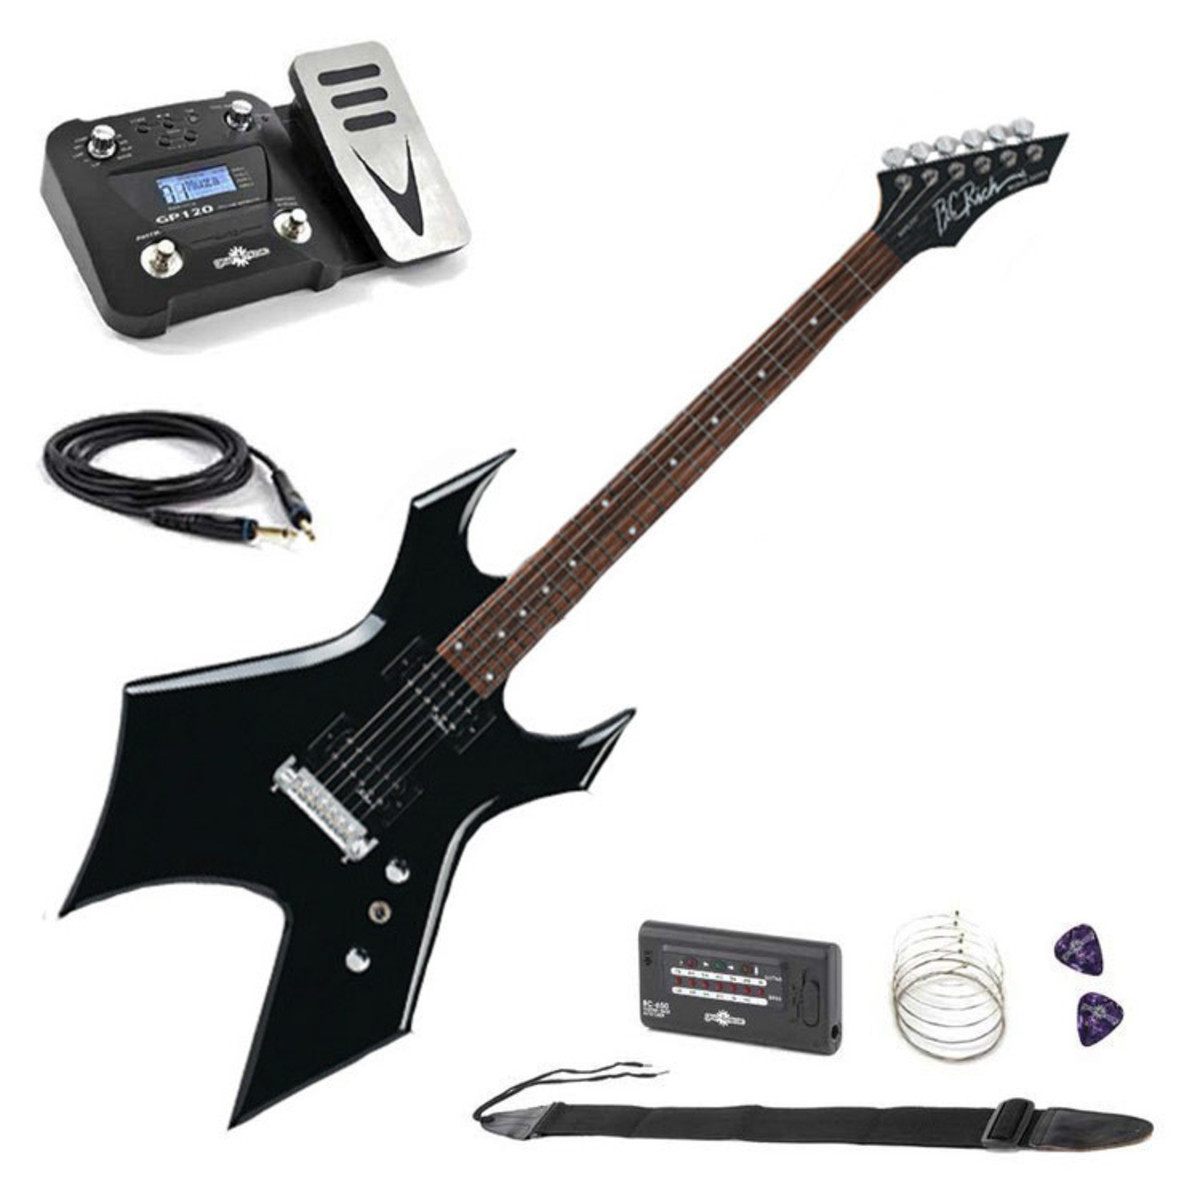 bc rich warlock one guitar onyx black with multi fx pedal pack at. Black Bedroom Furniture Sets. Home Design Ideas